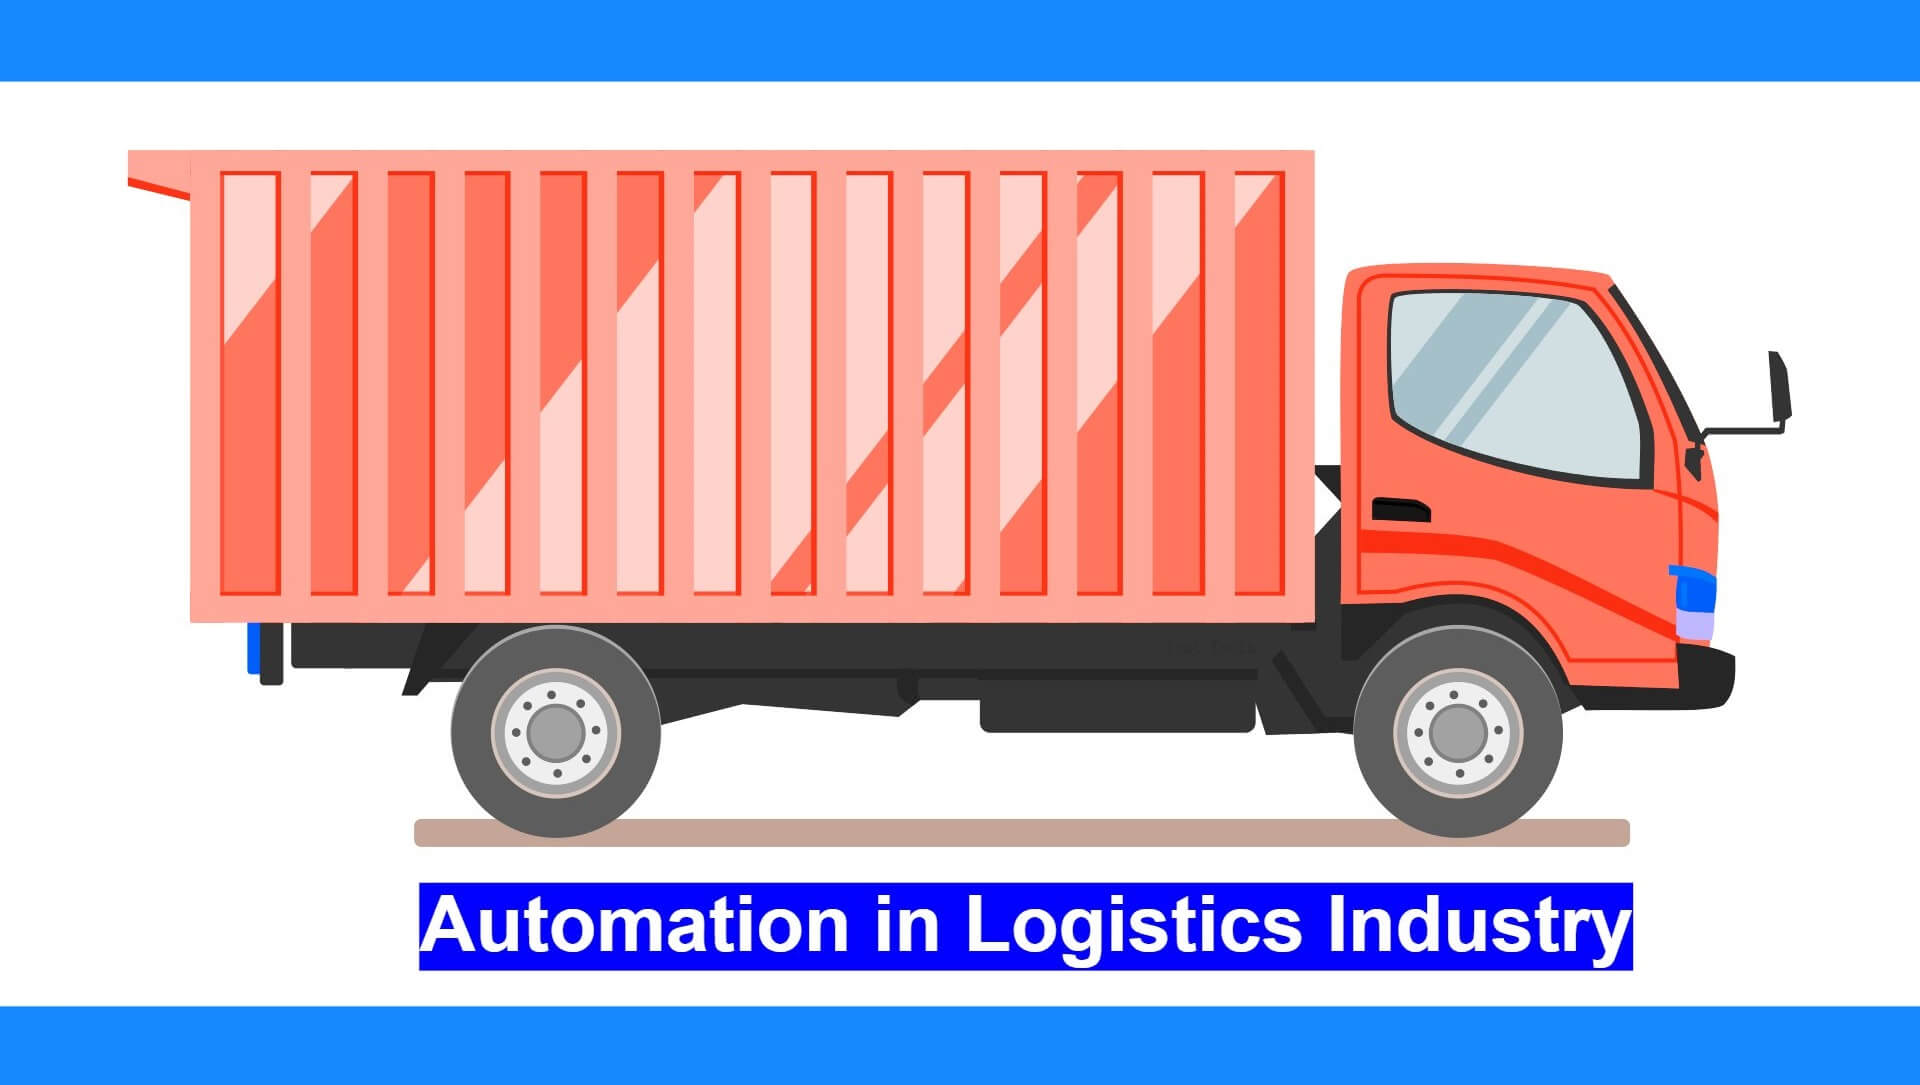 Automation in Logistics Industry